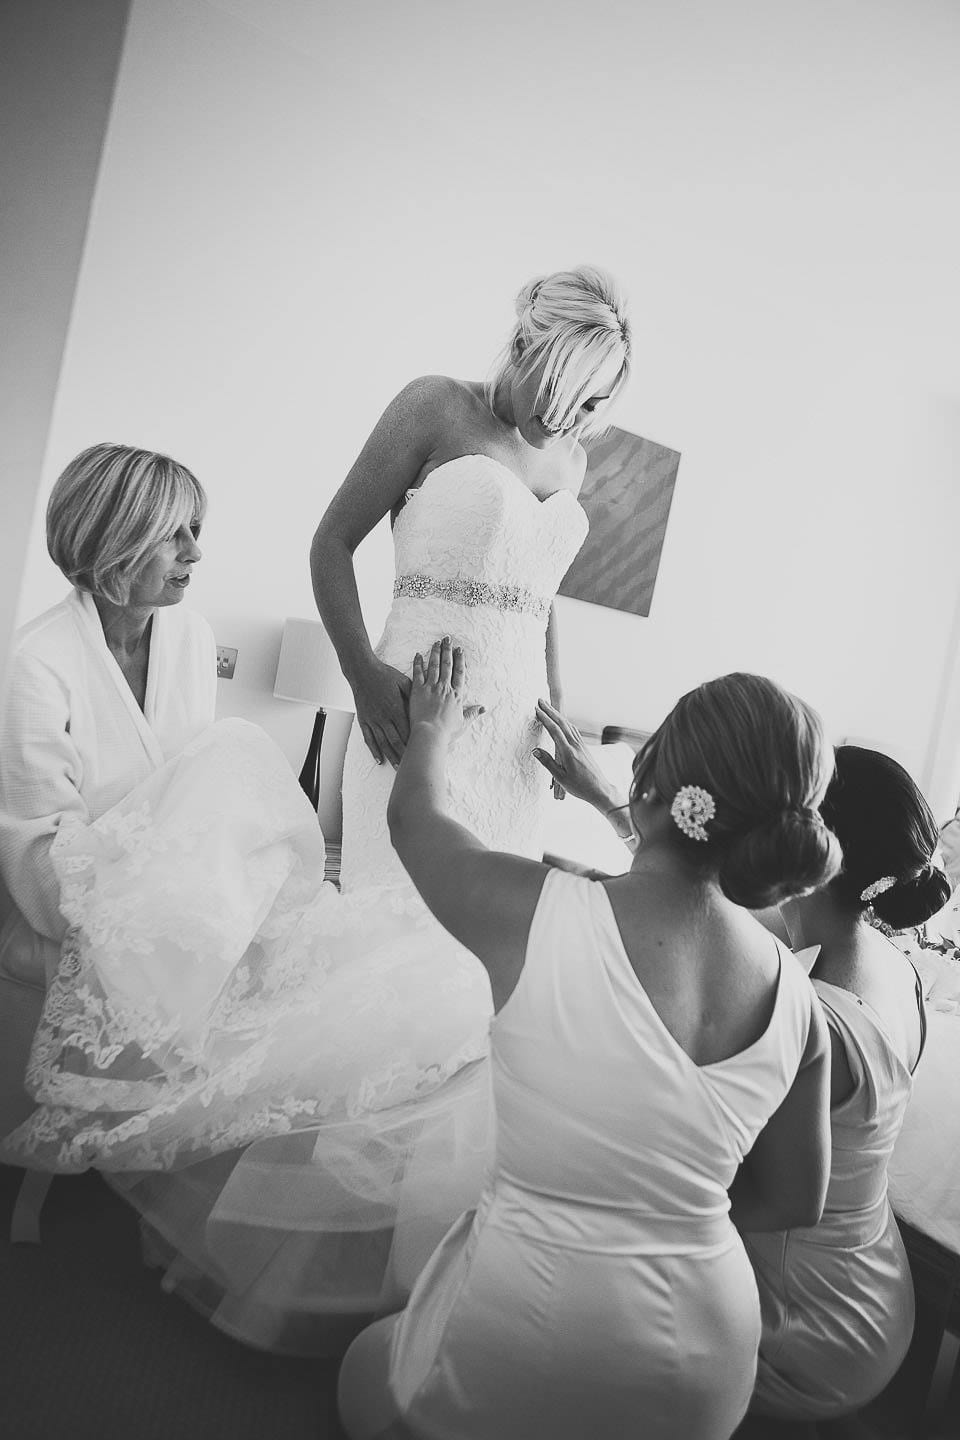 Bridesmaids helping to arrange the wedding dress on the bride at The Captains Club Hotel